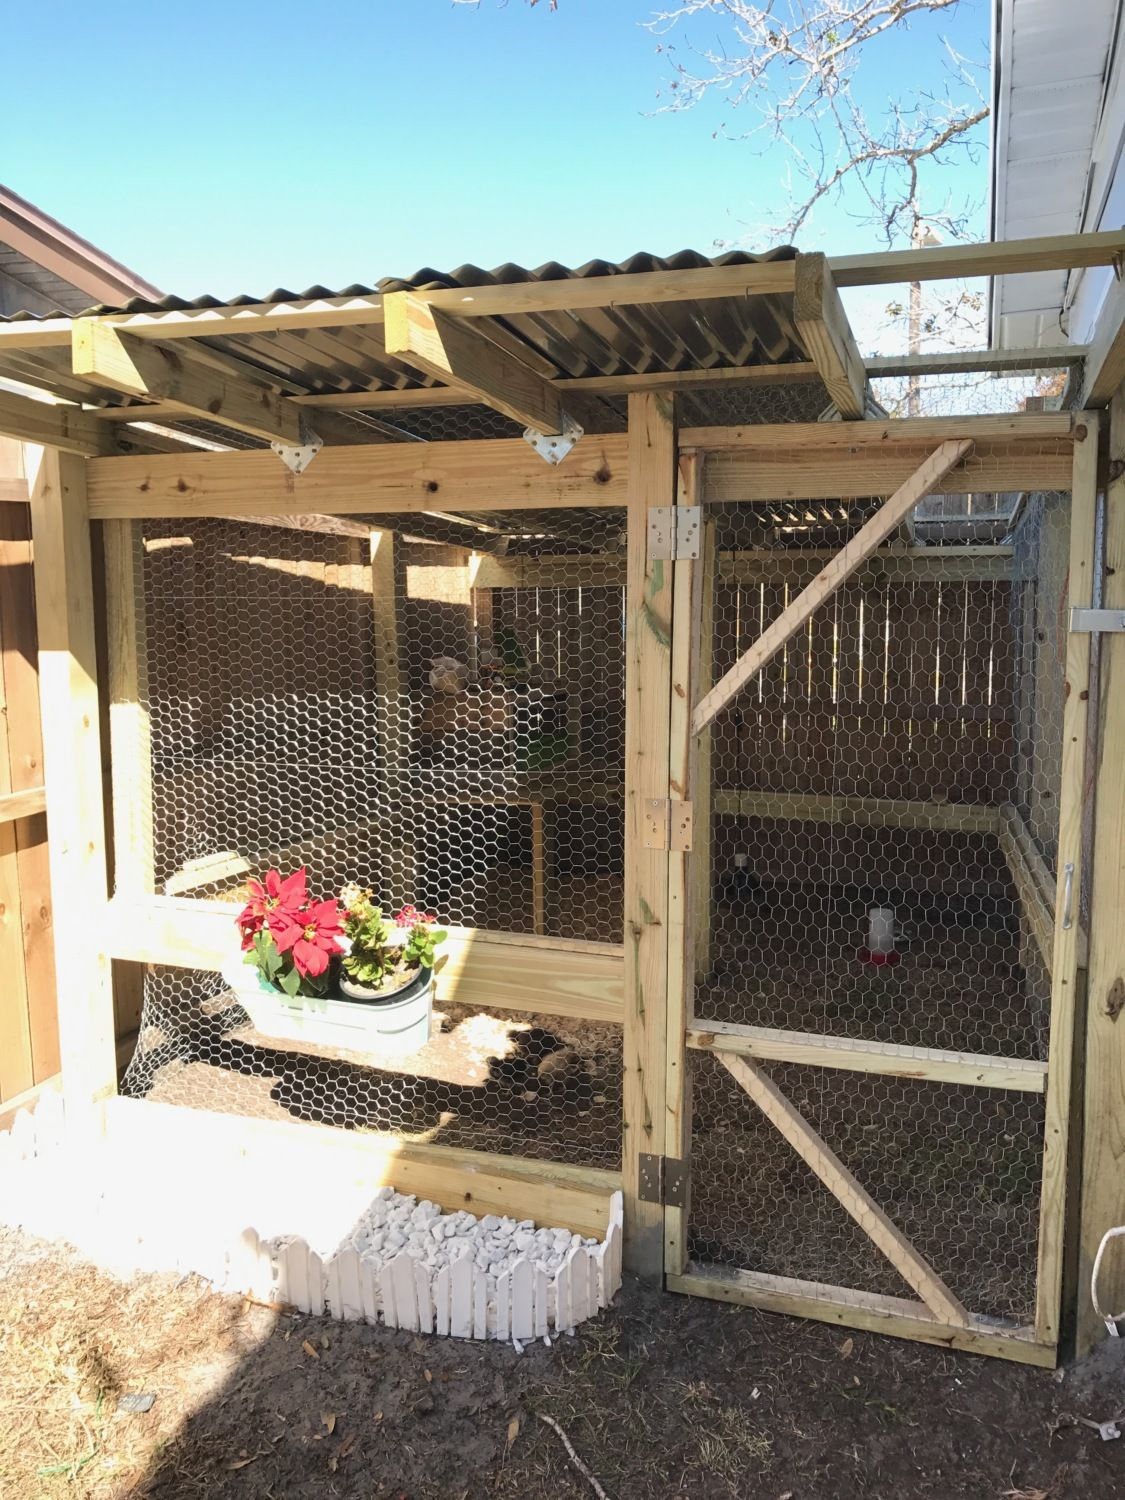 new to the chicken game help making homemade chicken feed